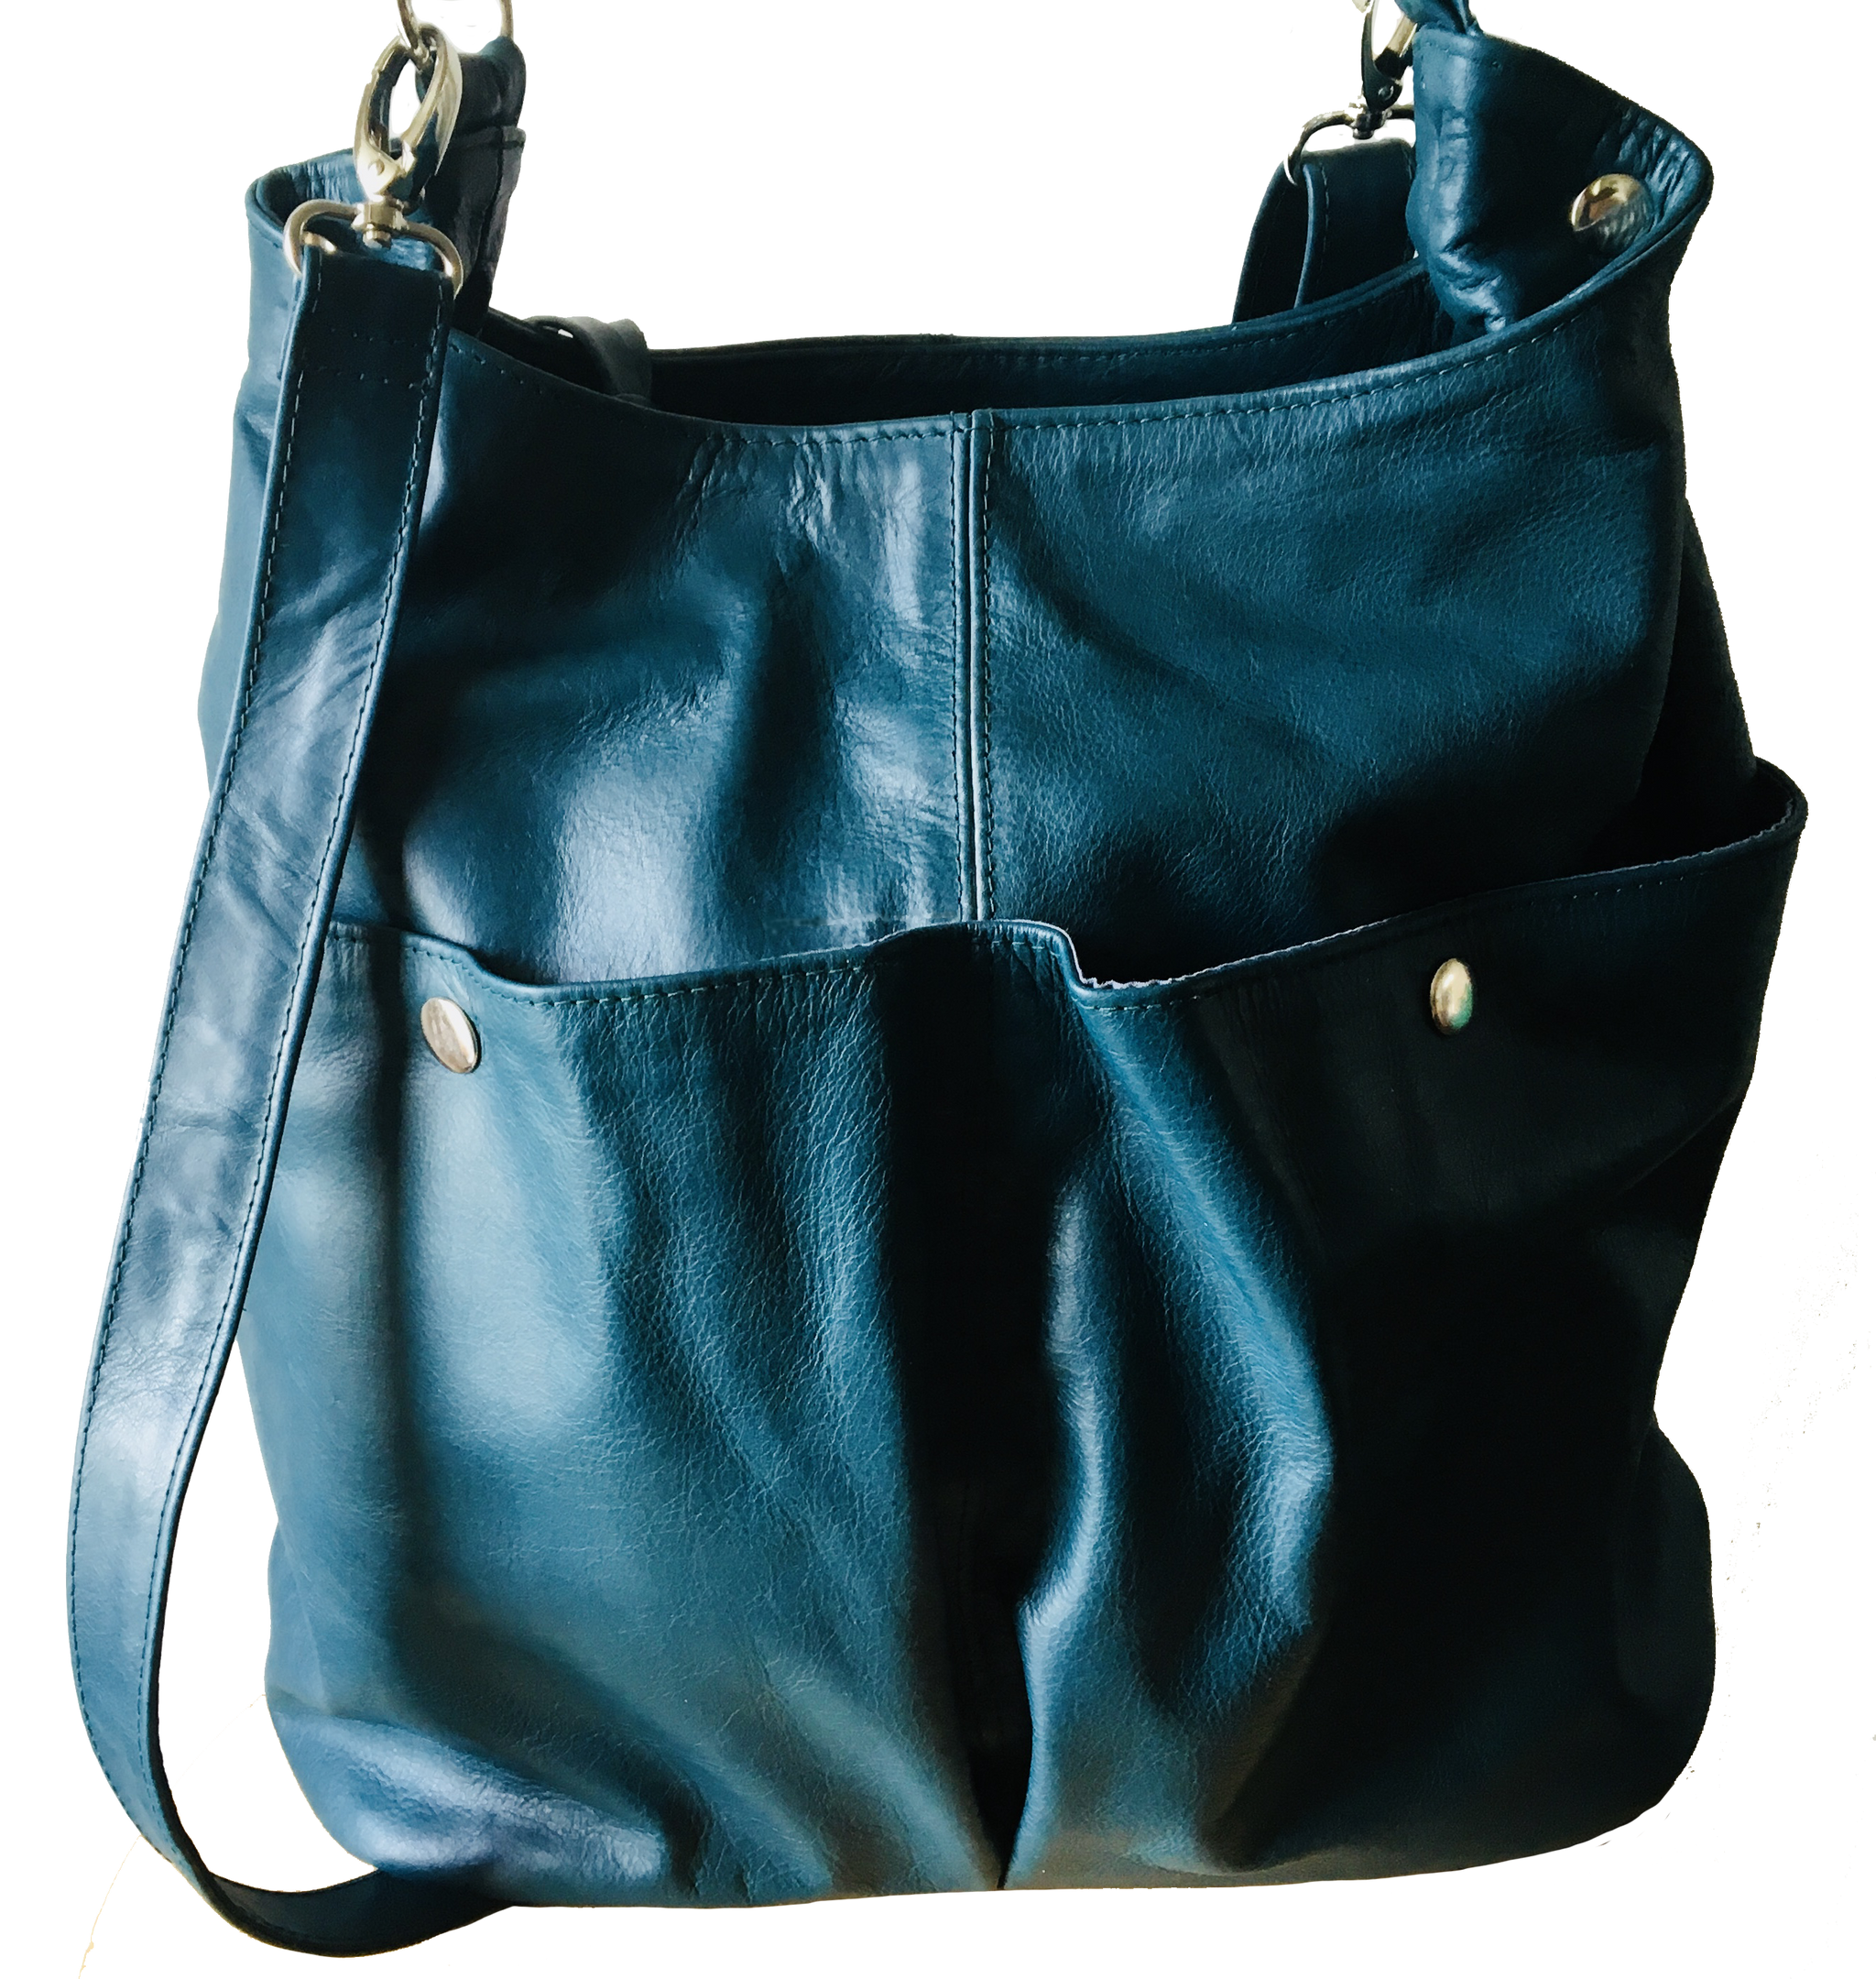 The Rio-Convertible soft shoulder tote bag which expands.